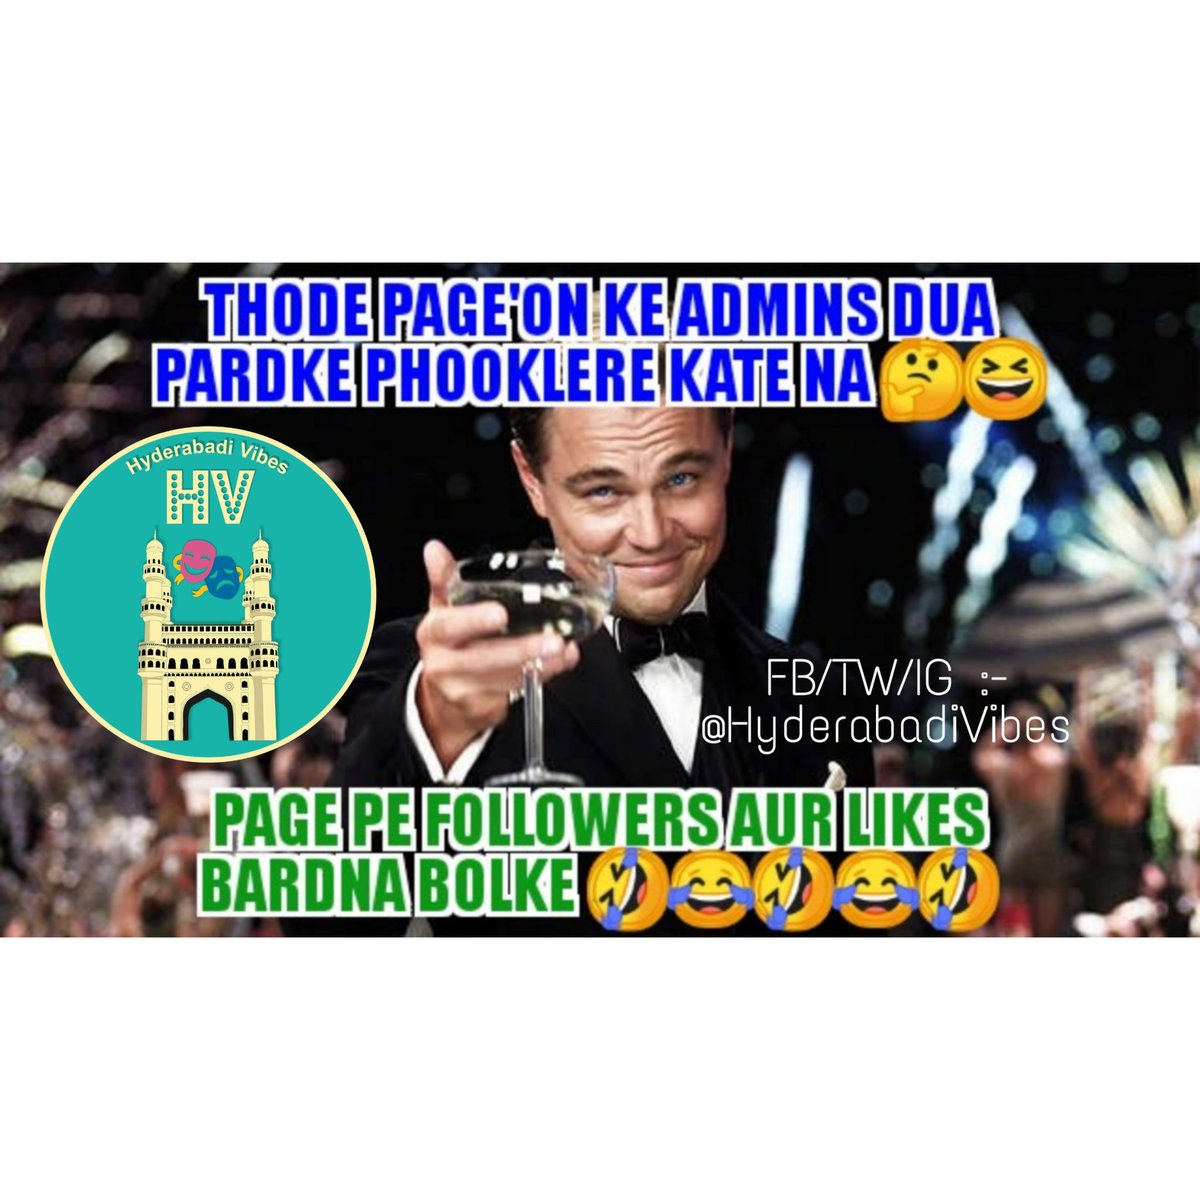 Hyderabadicomedy tagged Tweets and Download Twitter MP4